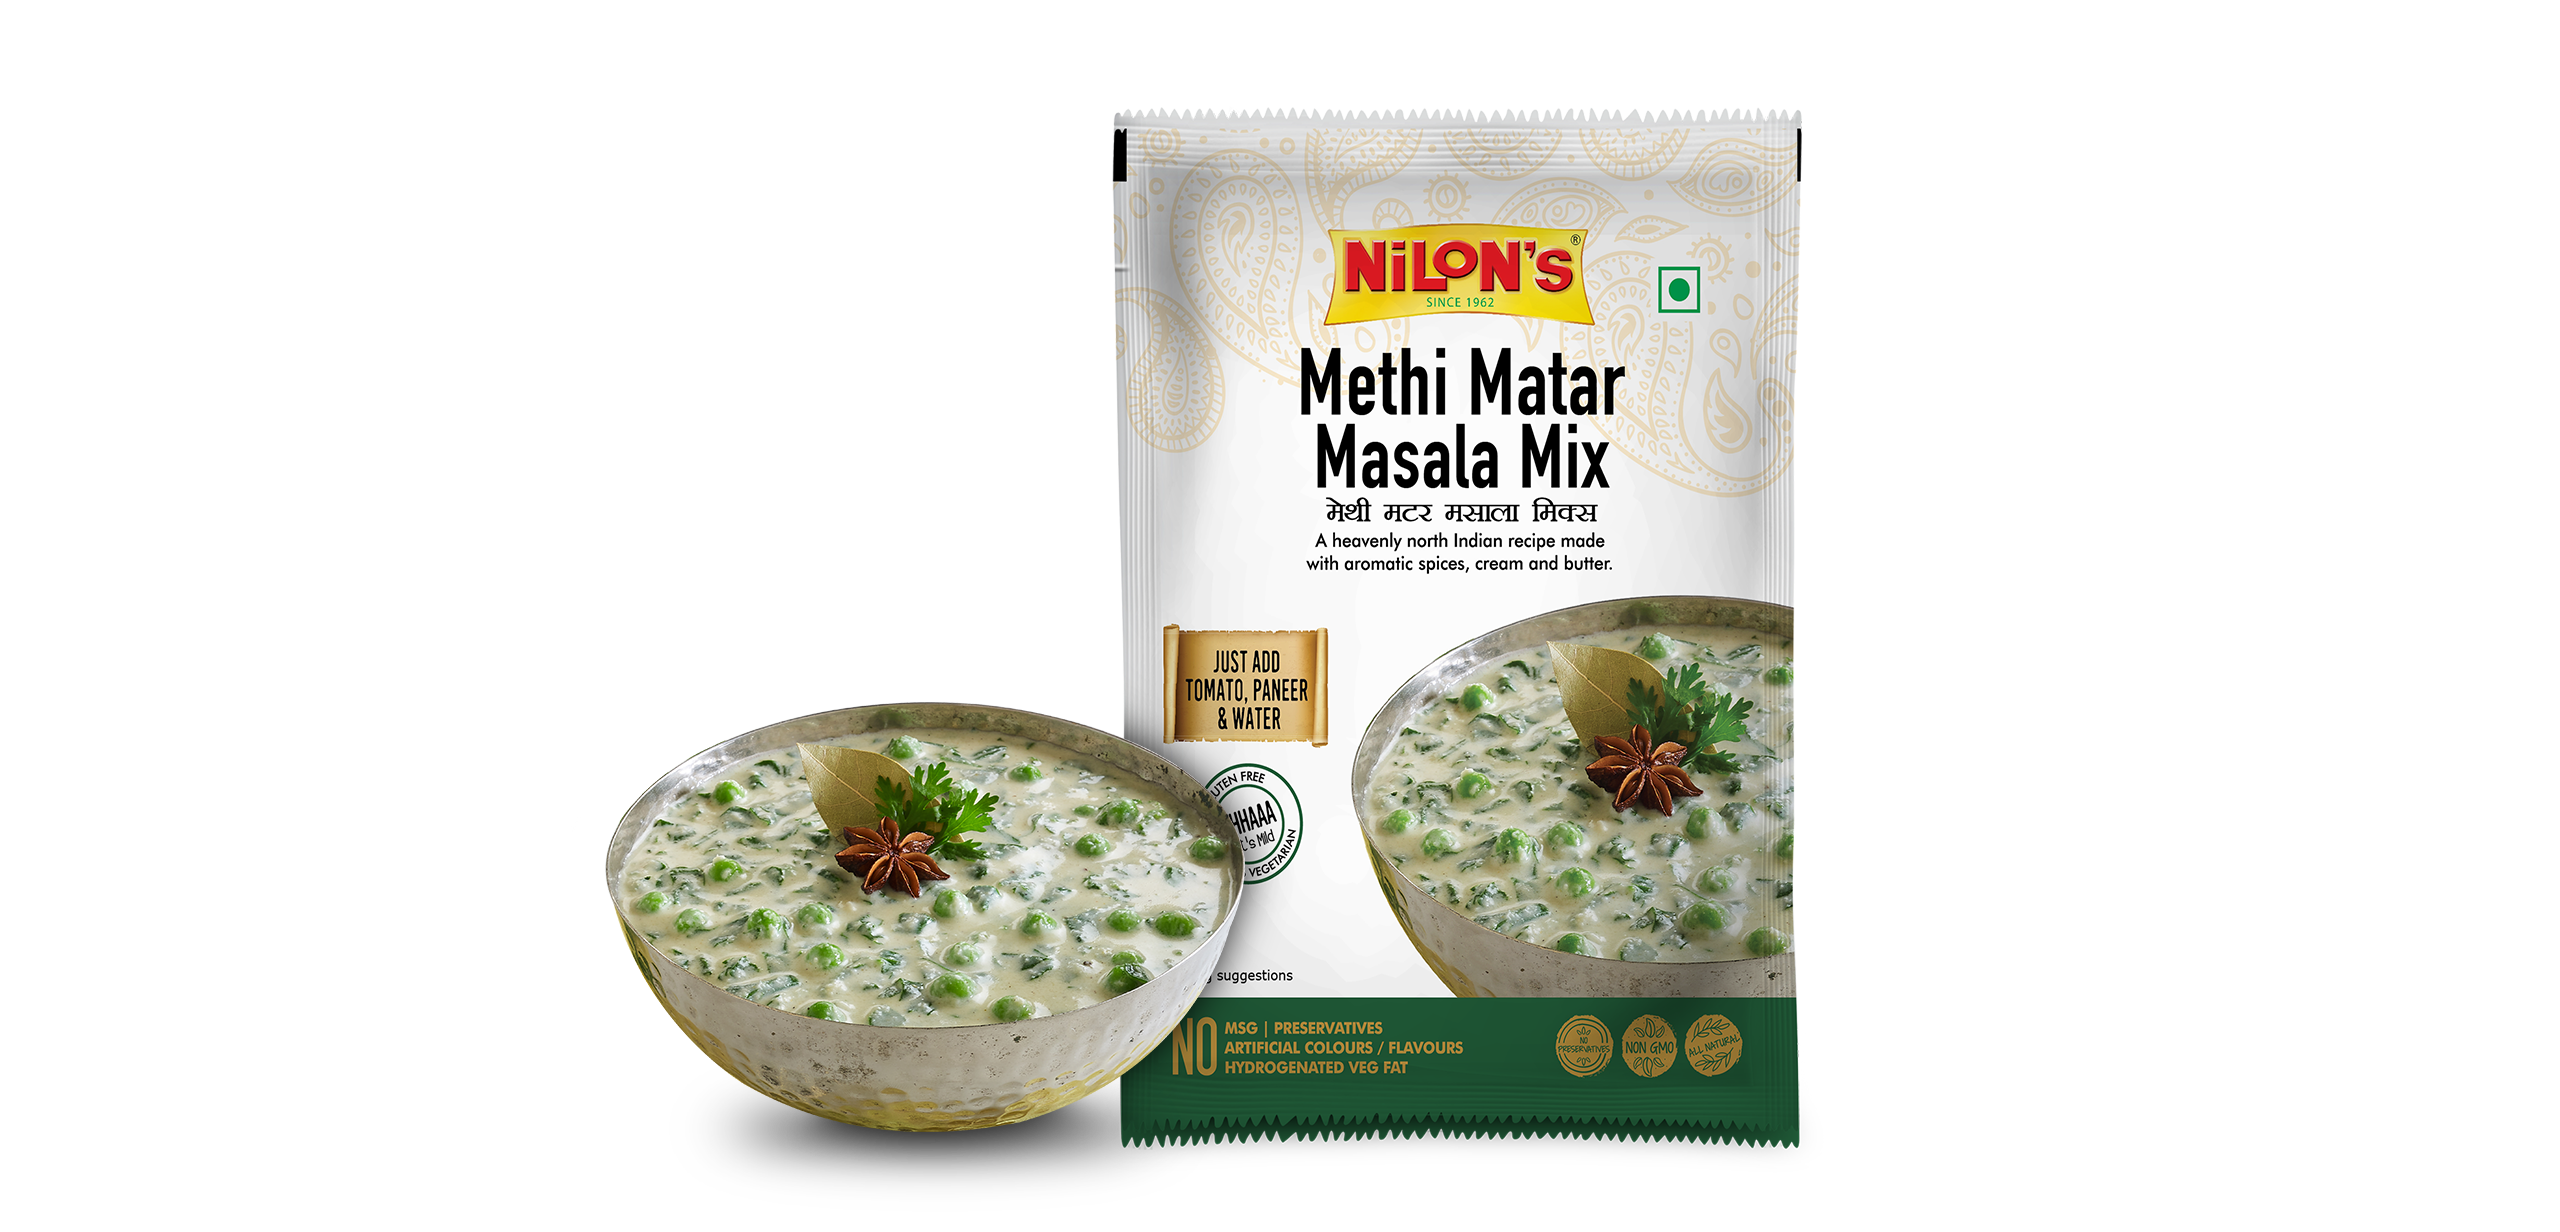 Methi Matar Malai mix